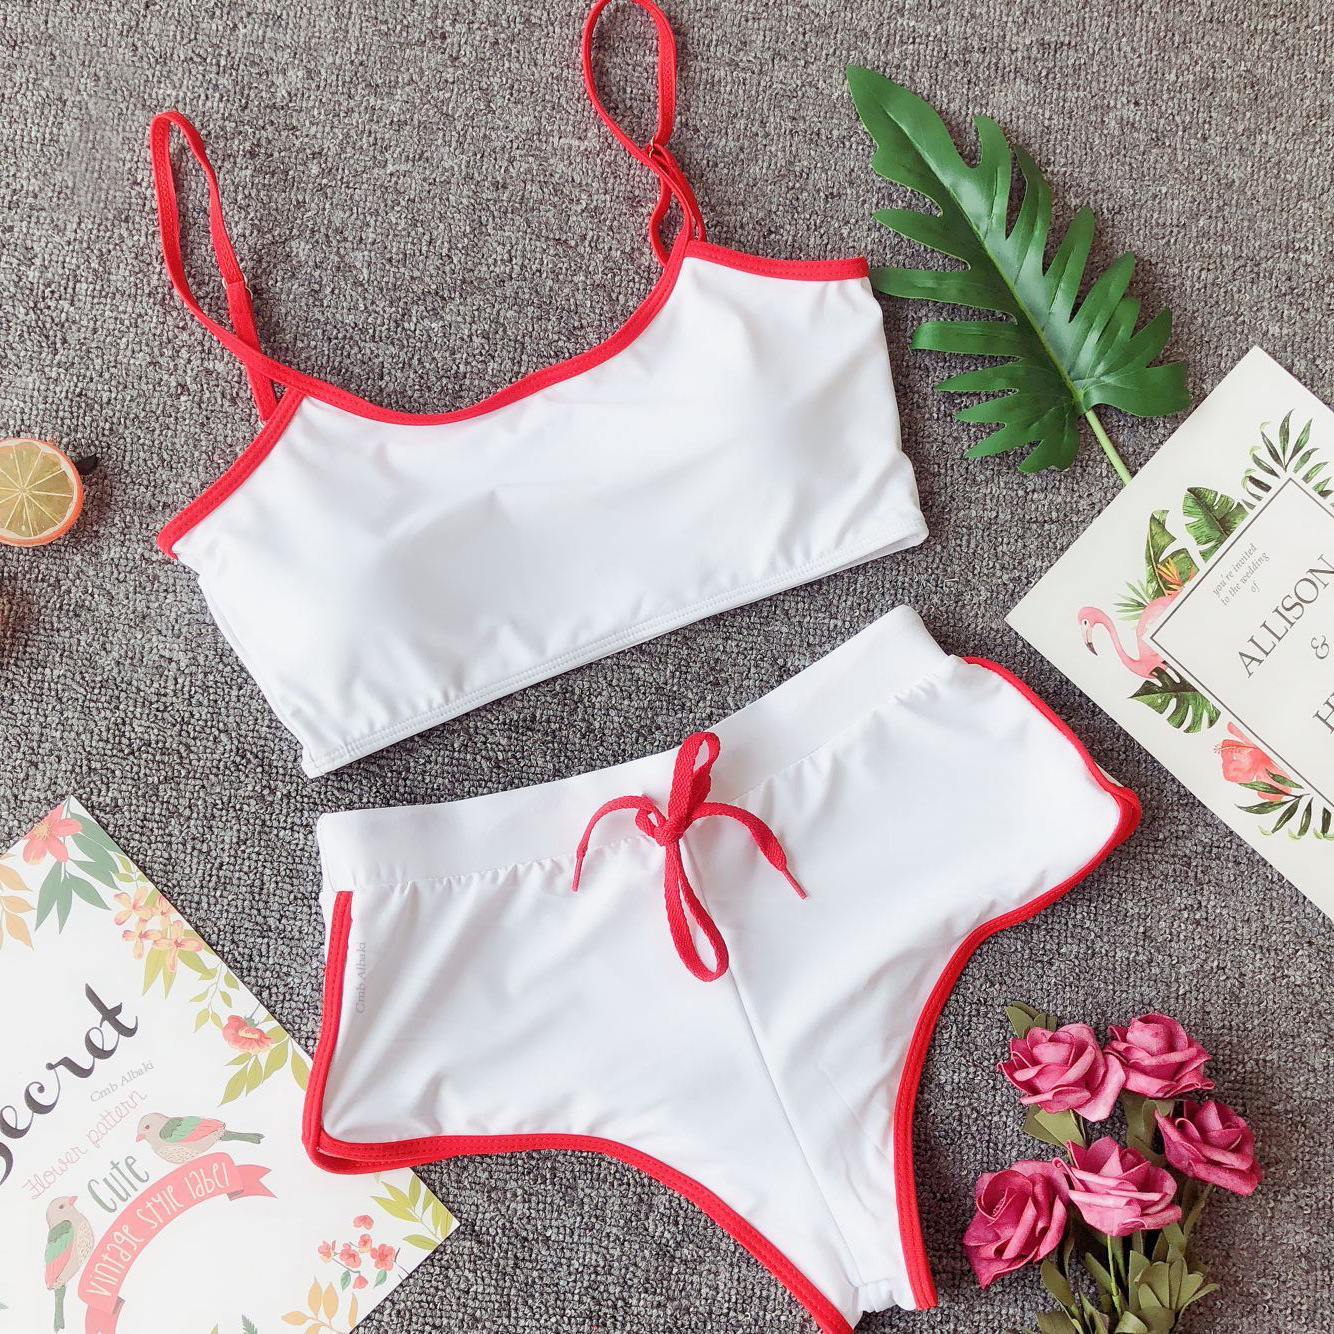 Women Sexy Two-Piece Sportswear Crop Top And Shorts Set